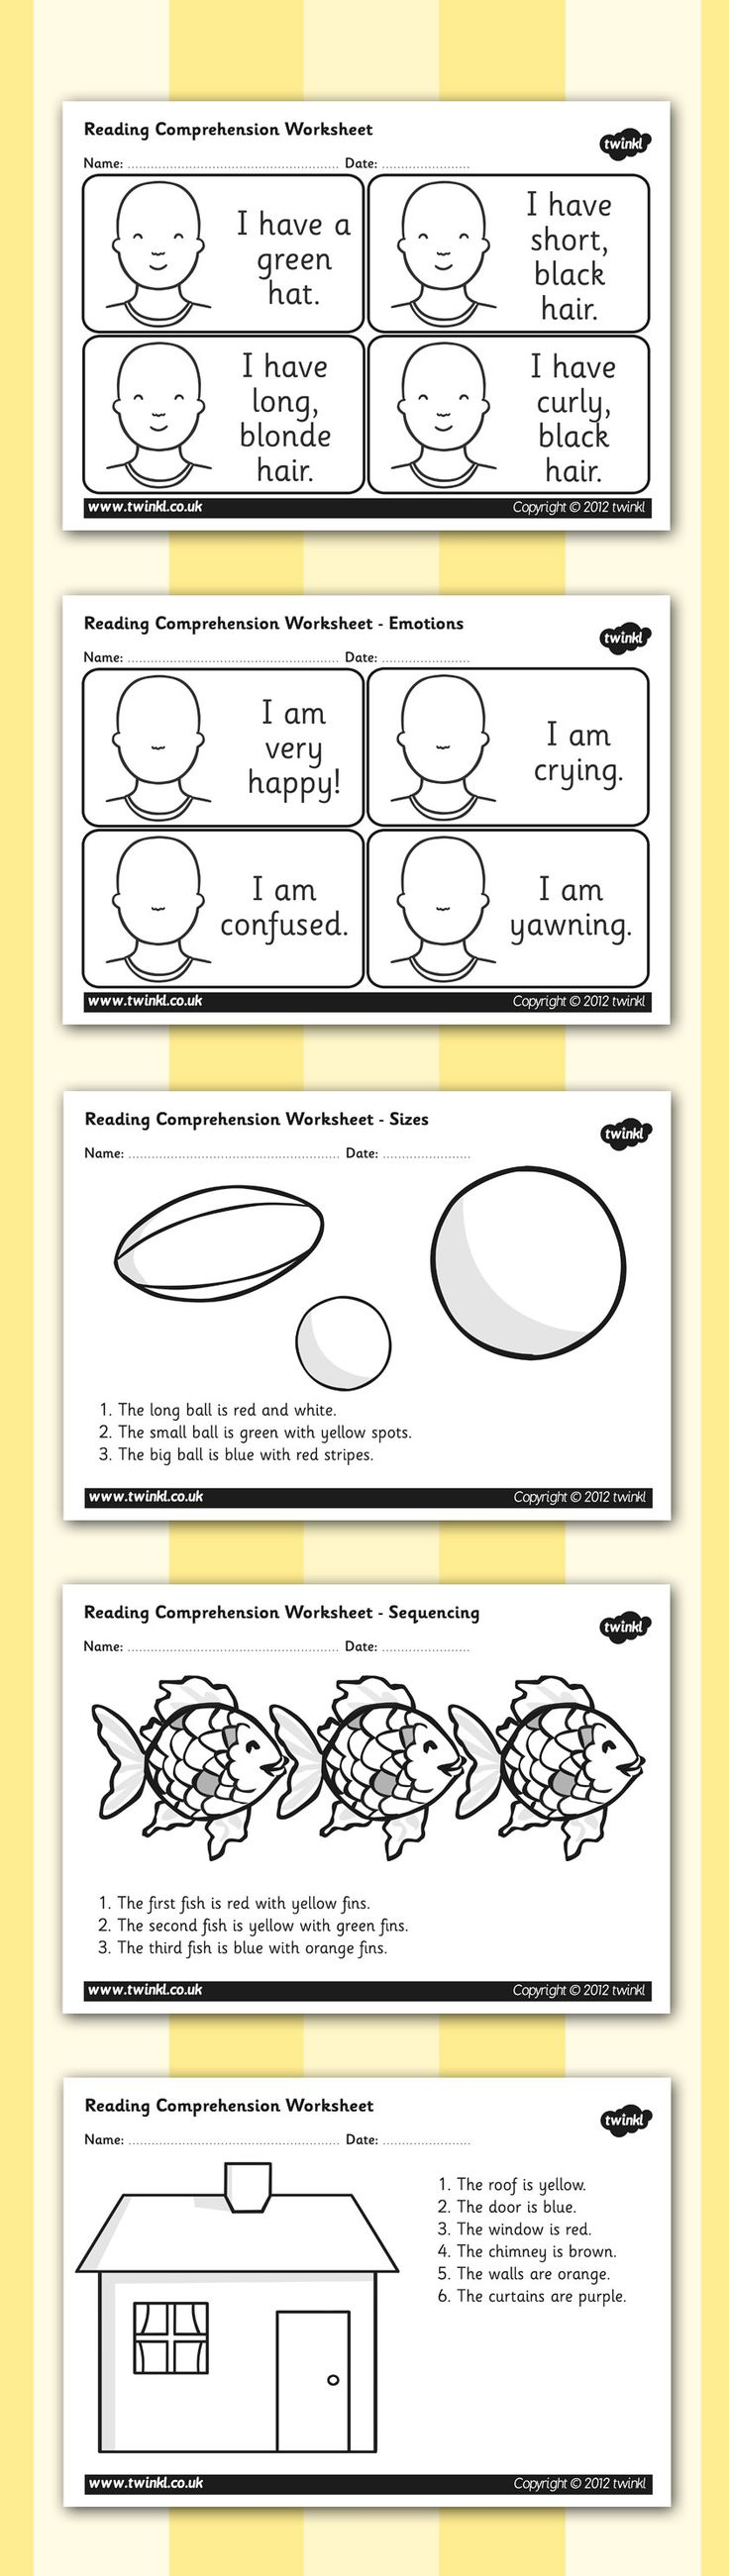 worksheet Reading Comprehension Worksheets For High School 1000 ideas about reading worksheets on pinterest twinkl resources comprehension higher ability printable for primary